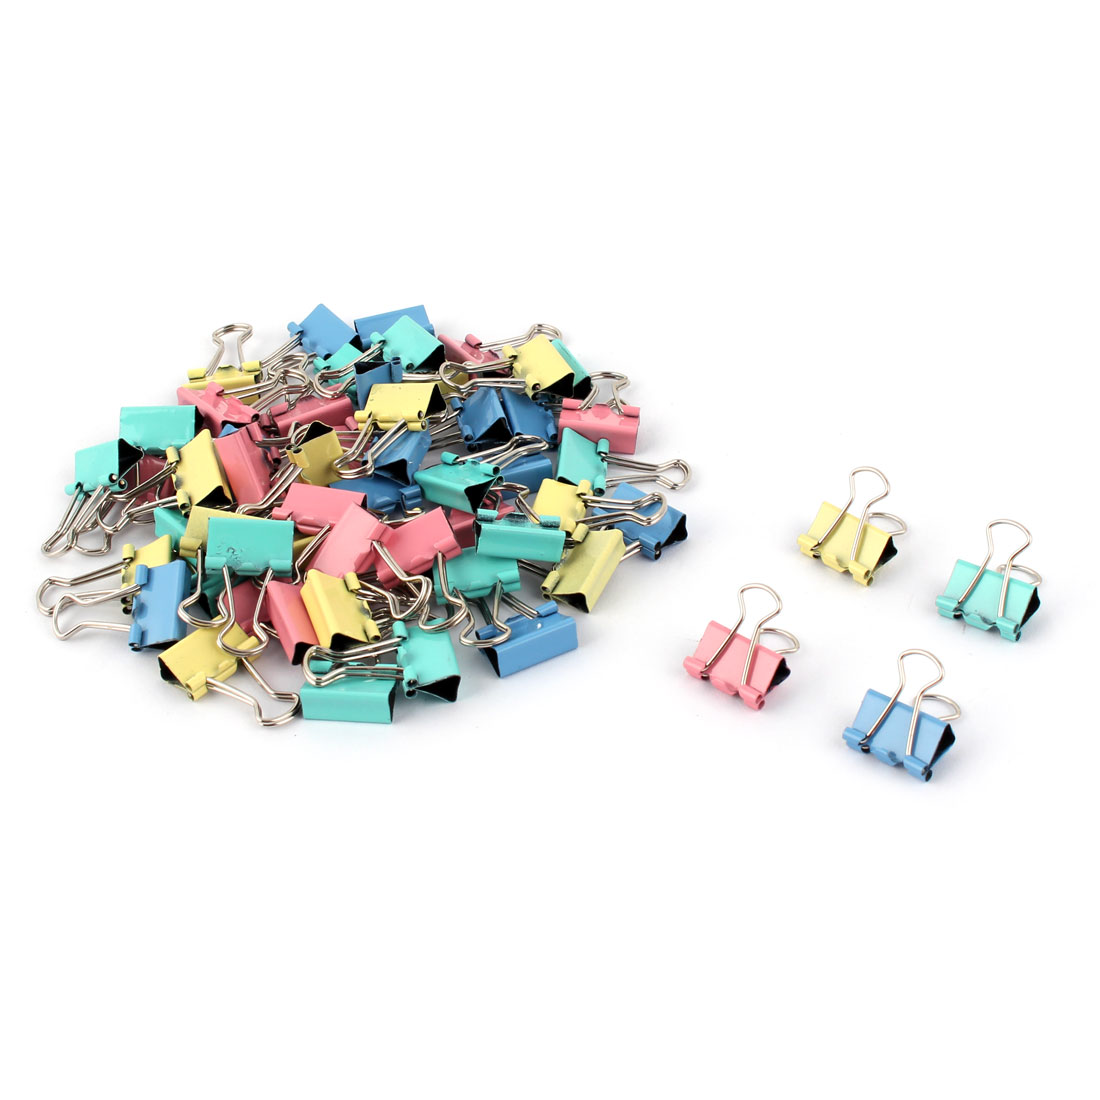 Home Office Metal Bill Ticket File Paper Mini Binder Clips Clamps 60pcs